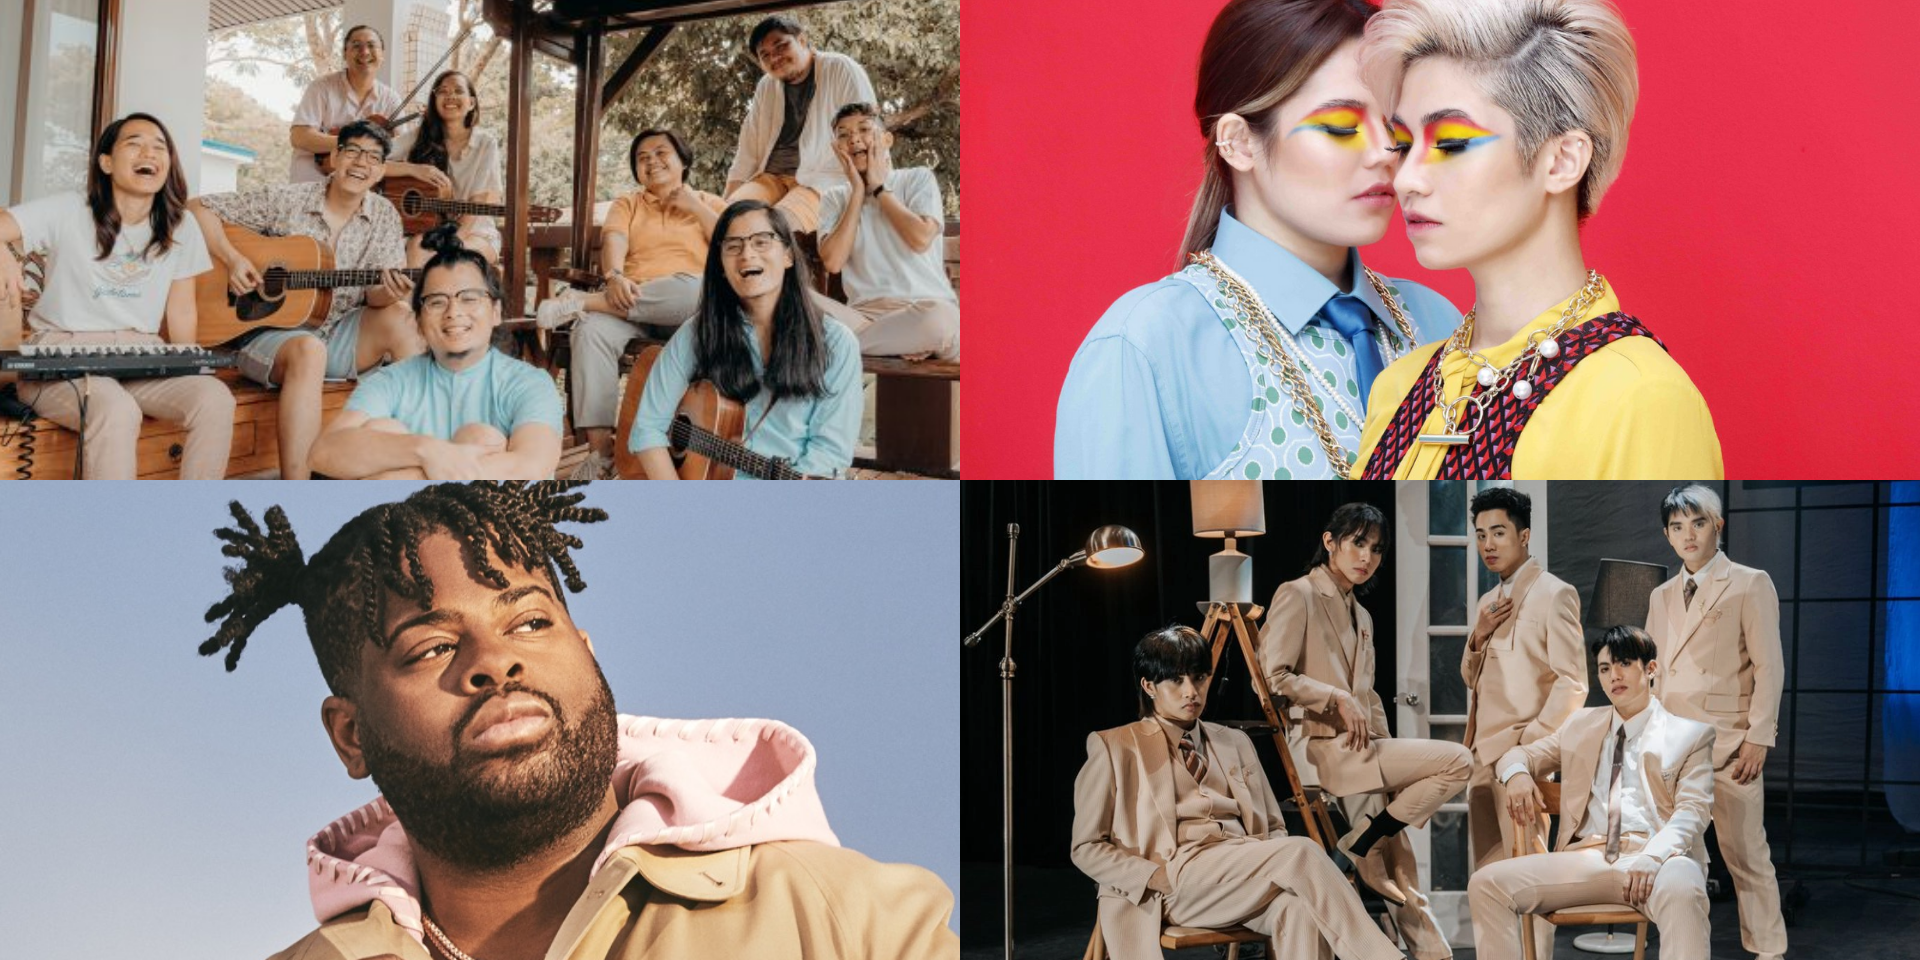 SB19, Ben&Ben, Leanne & Naara, Pink Sweat$ and more to perform at MYX Awards 2021